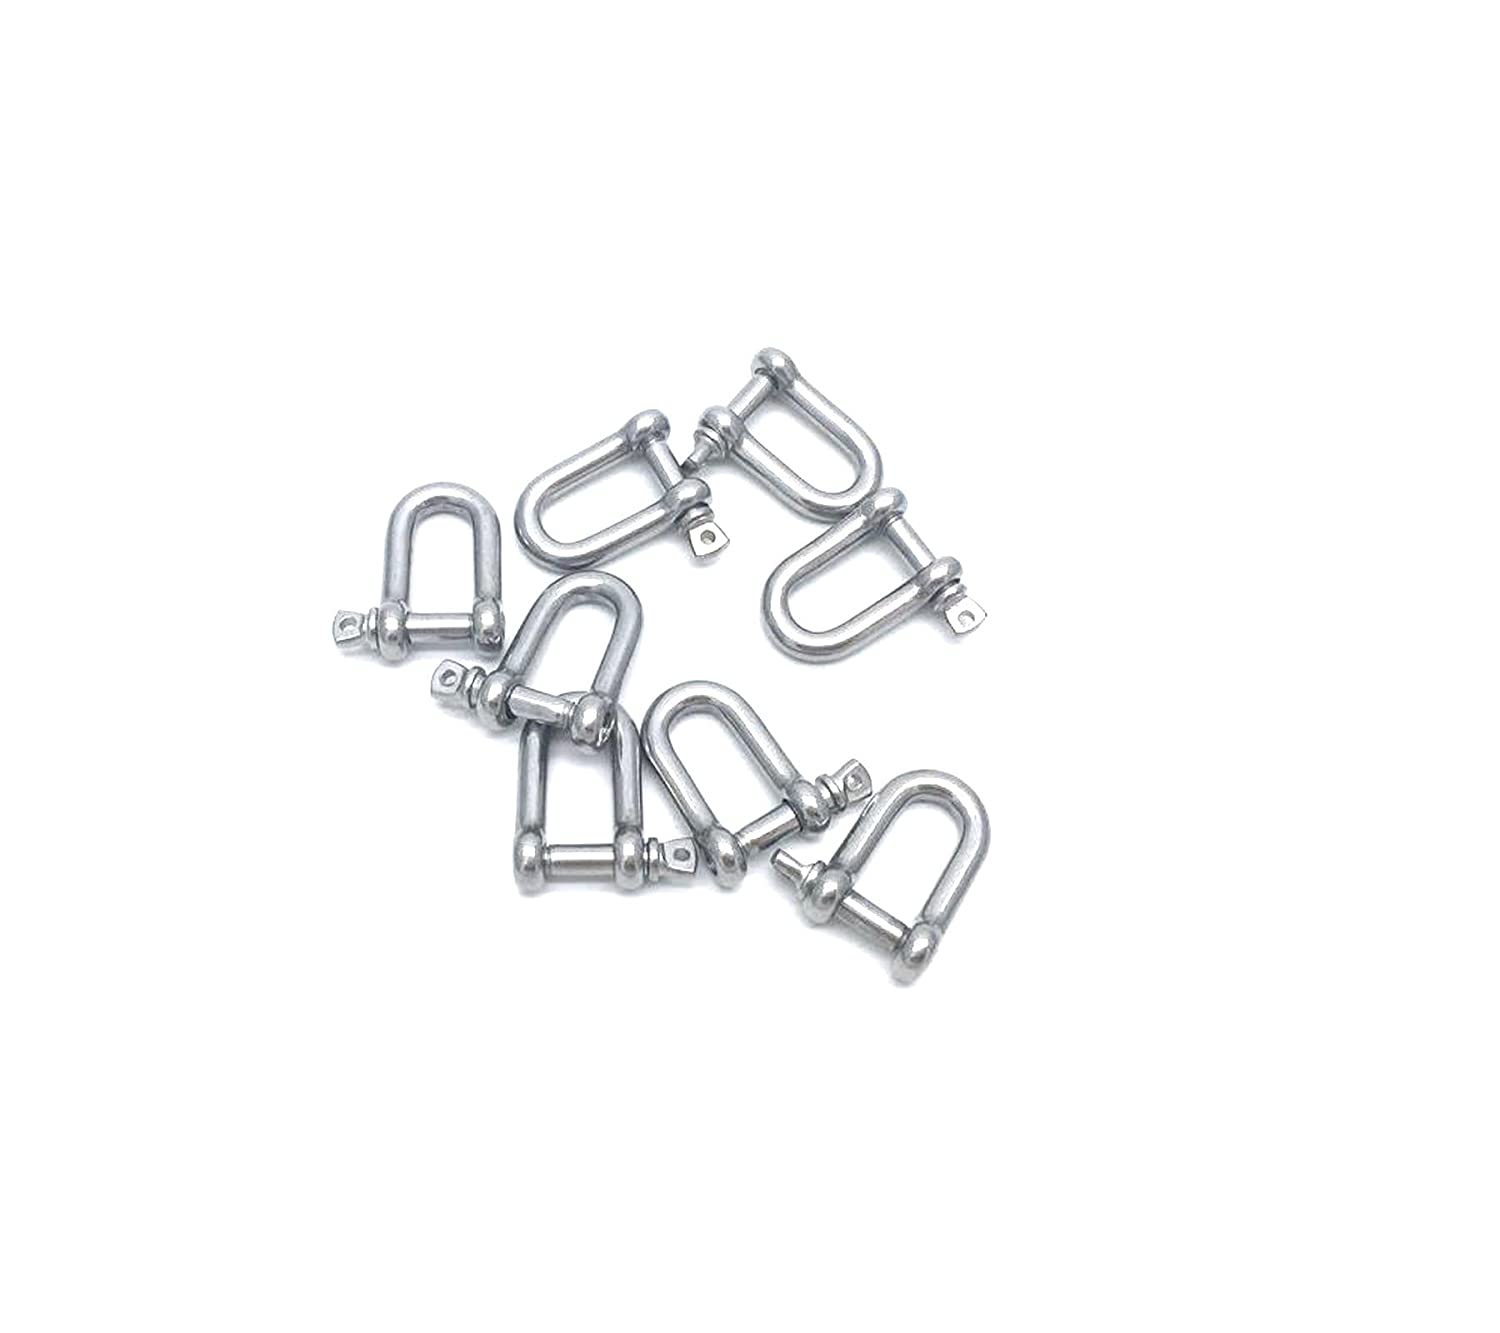 LTD Antrader 304 Stainless Steel Forged D Shackles 5//32 Inch with Fastening Strap 8pcs Guangzhou Openfind Electronic Commerce CO